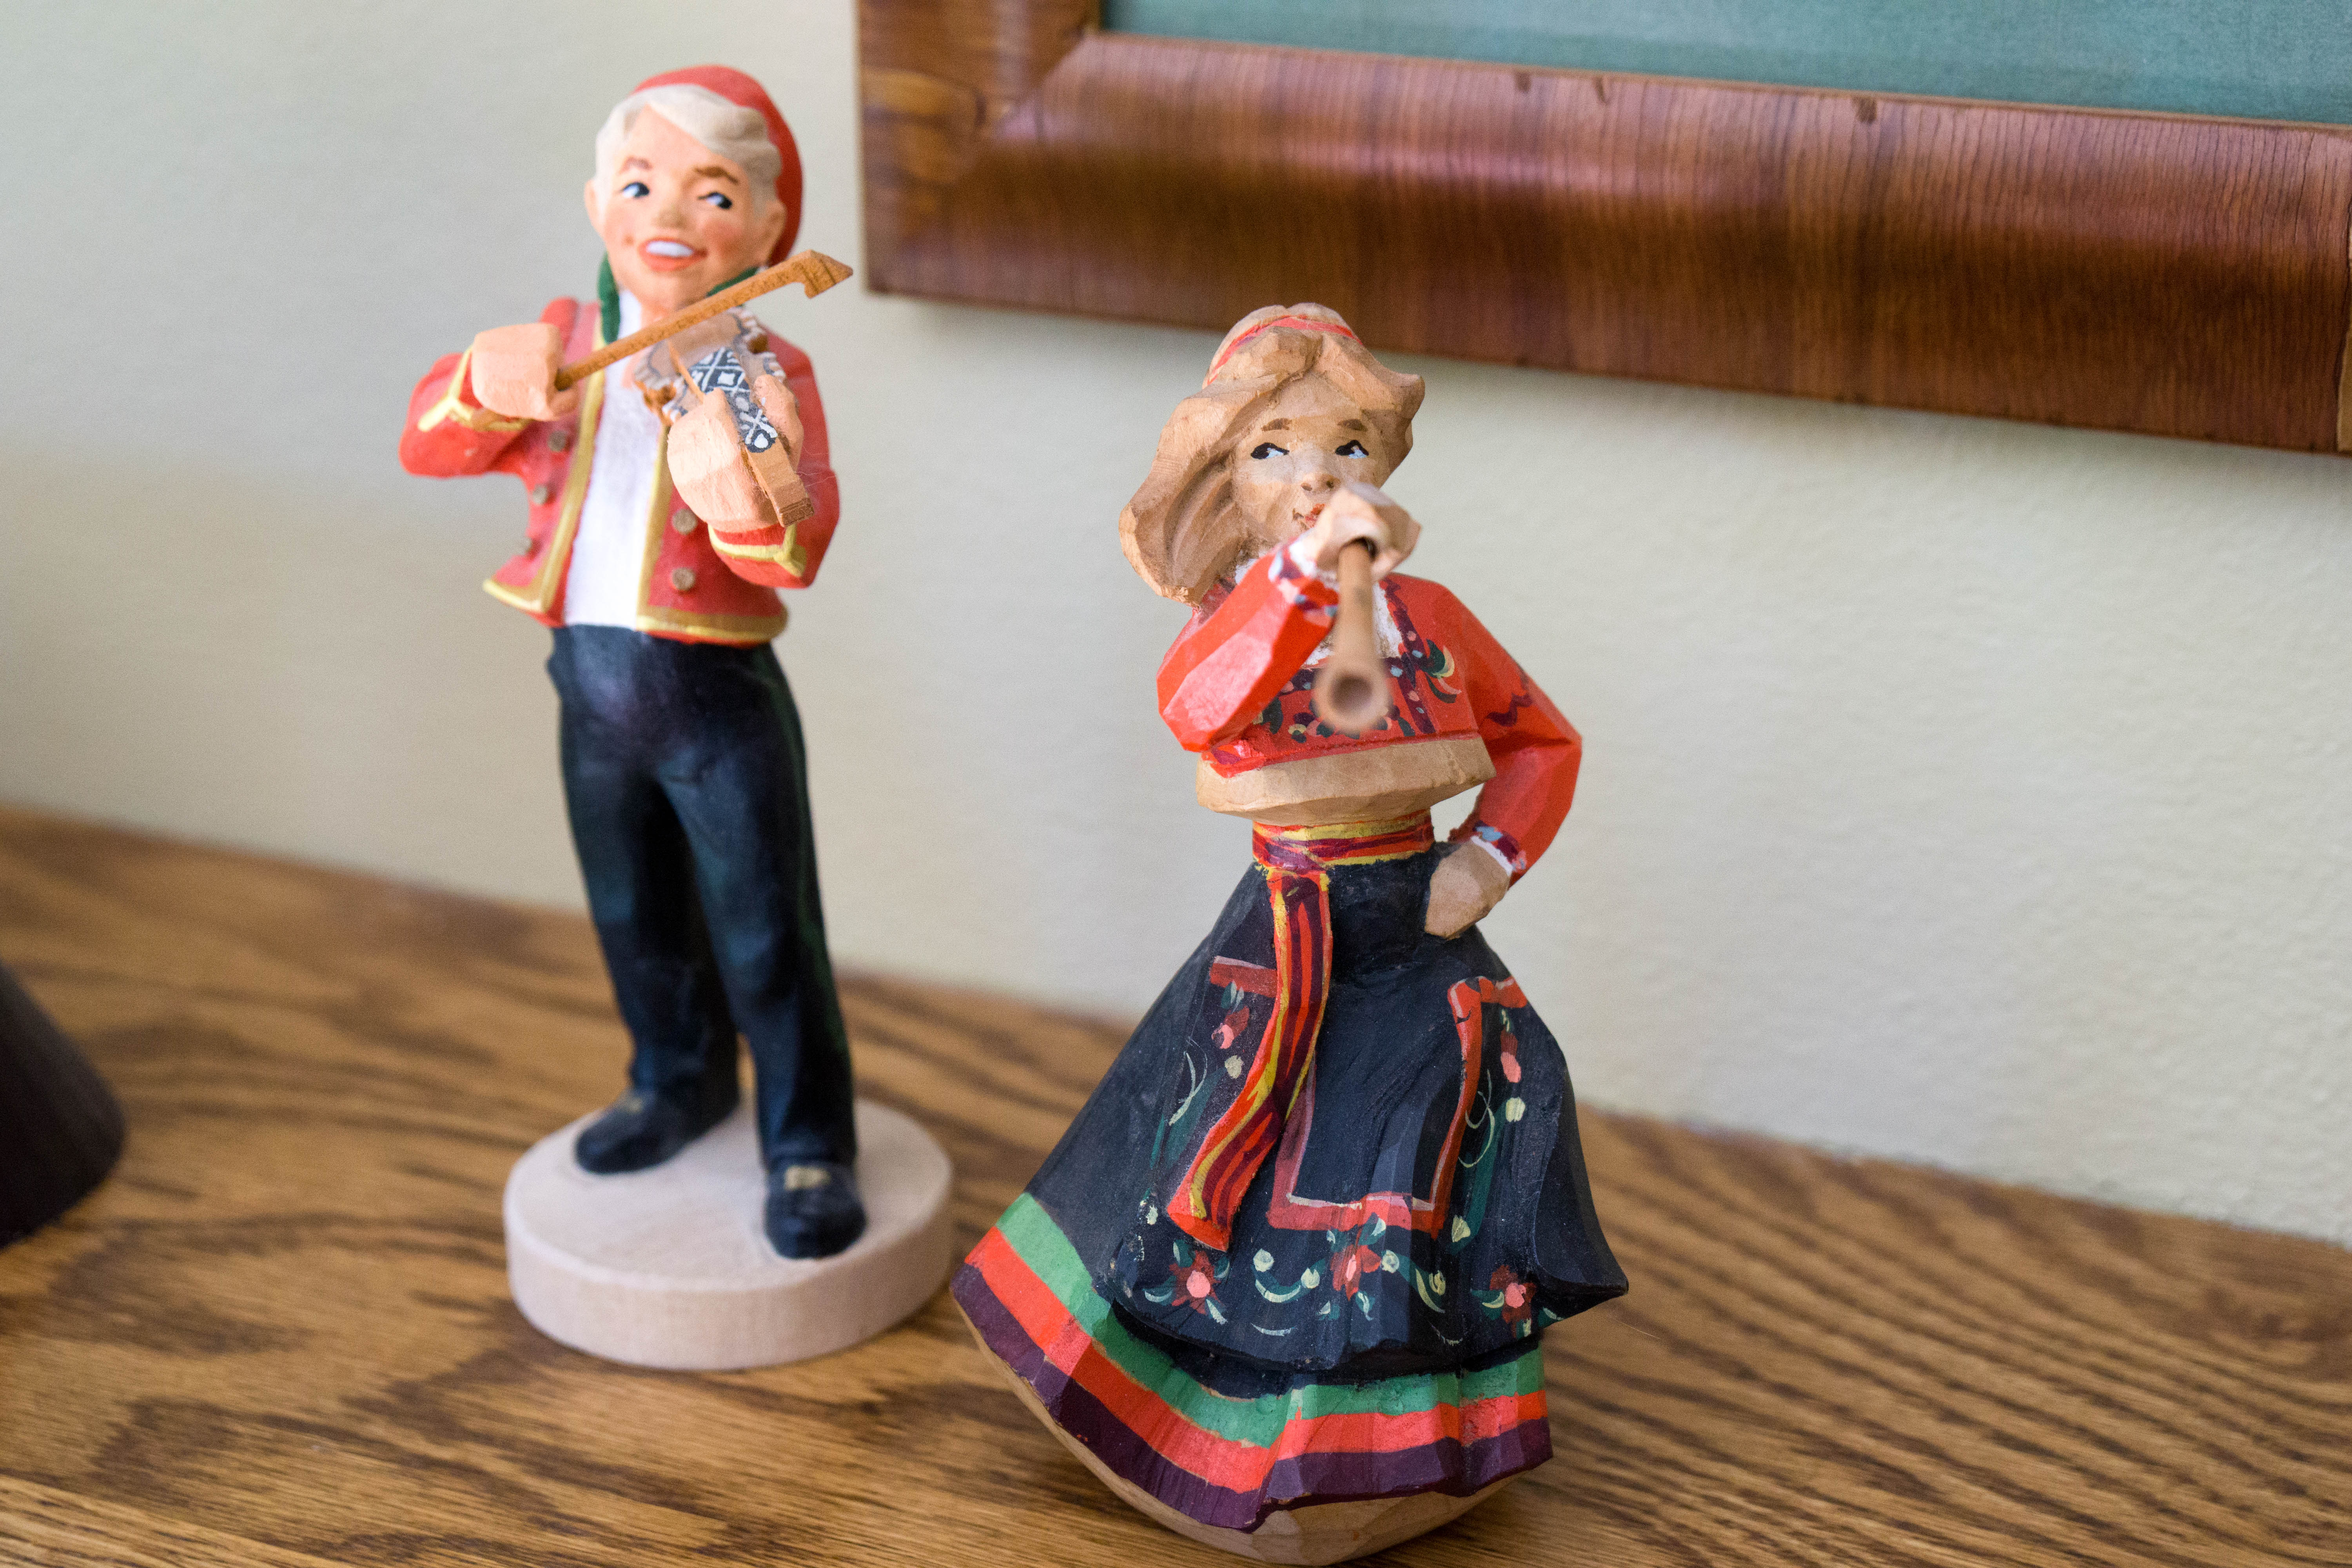 Two carved wooden figurines depicting musicians in Norwegian folk costumes.